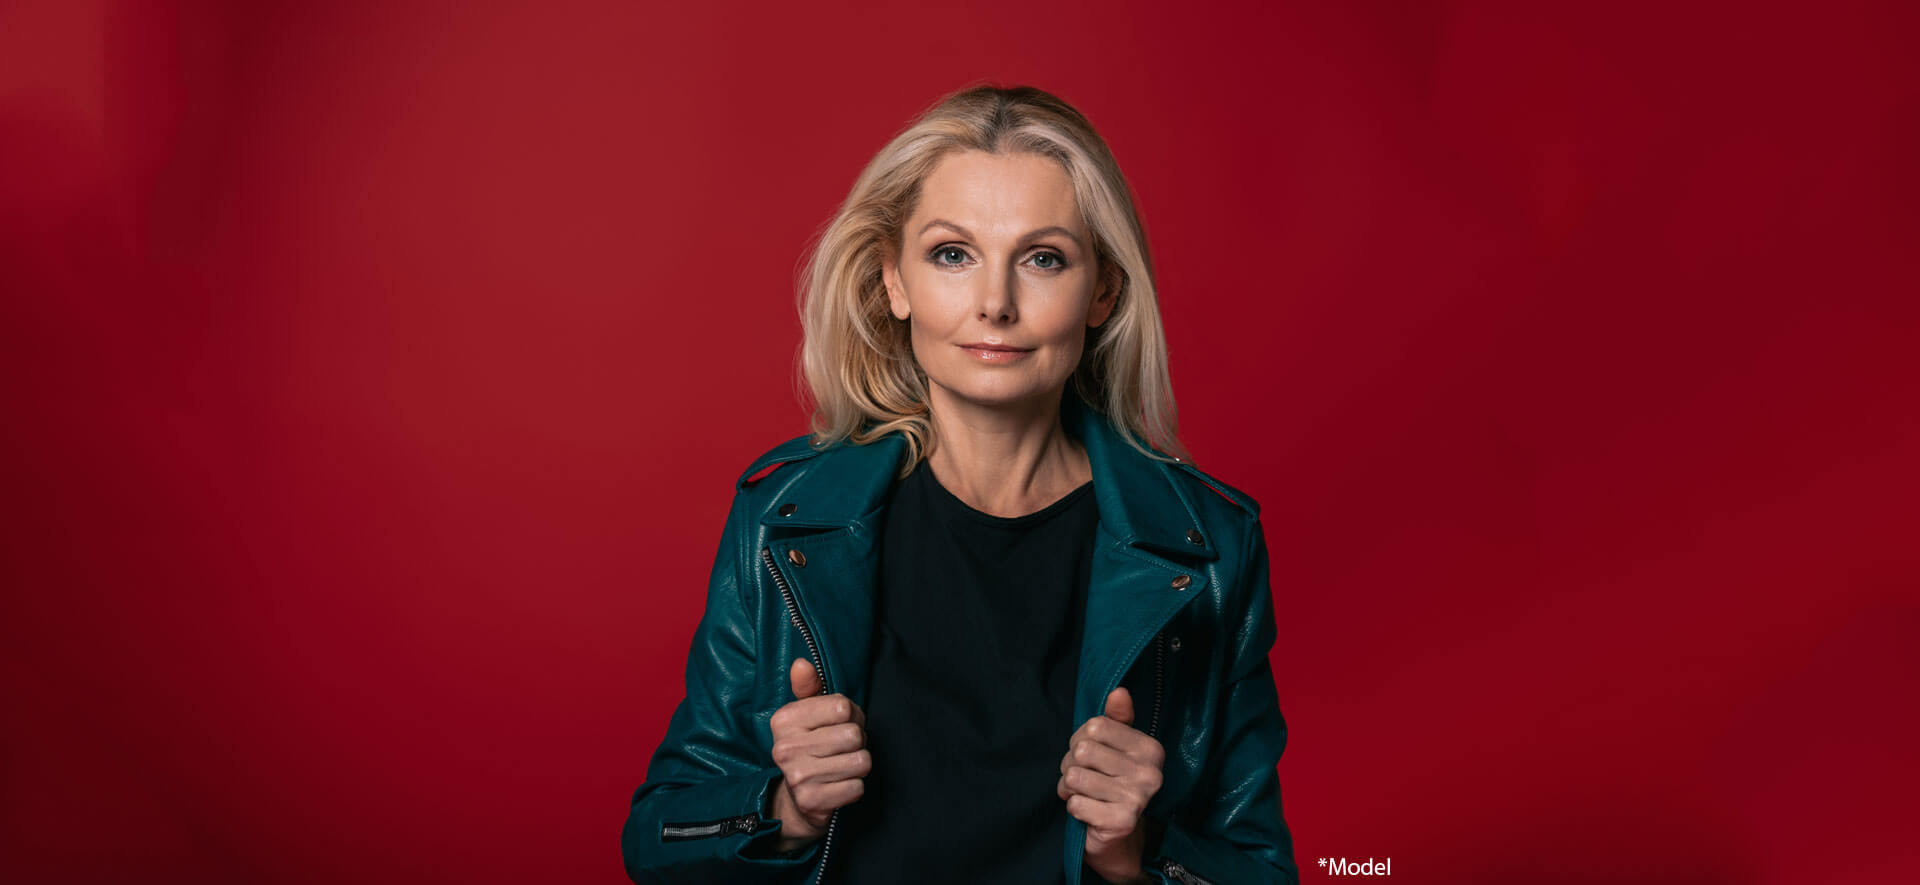 Stylish mature woman in leather jacket isolated on red